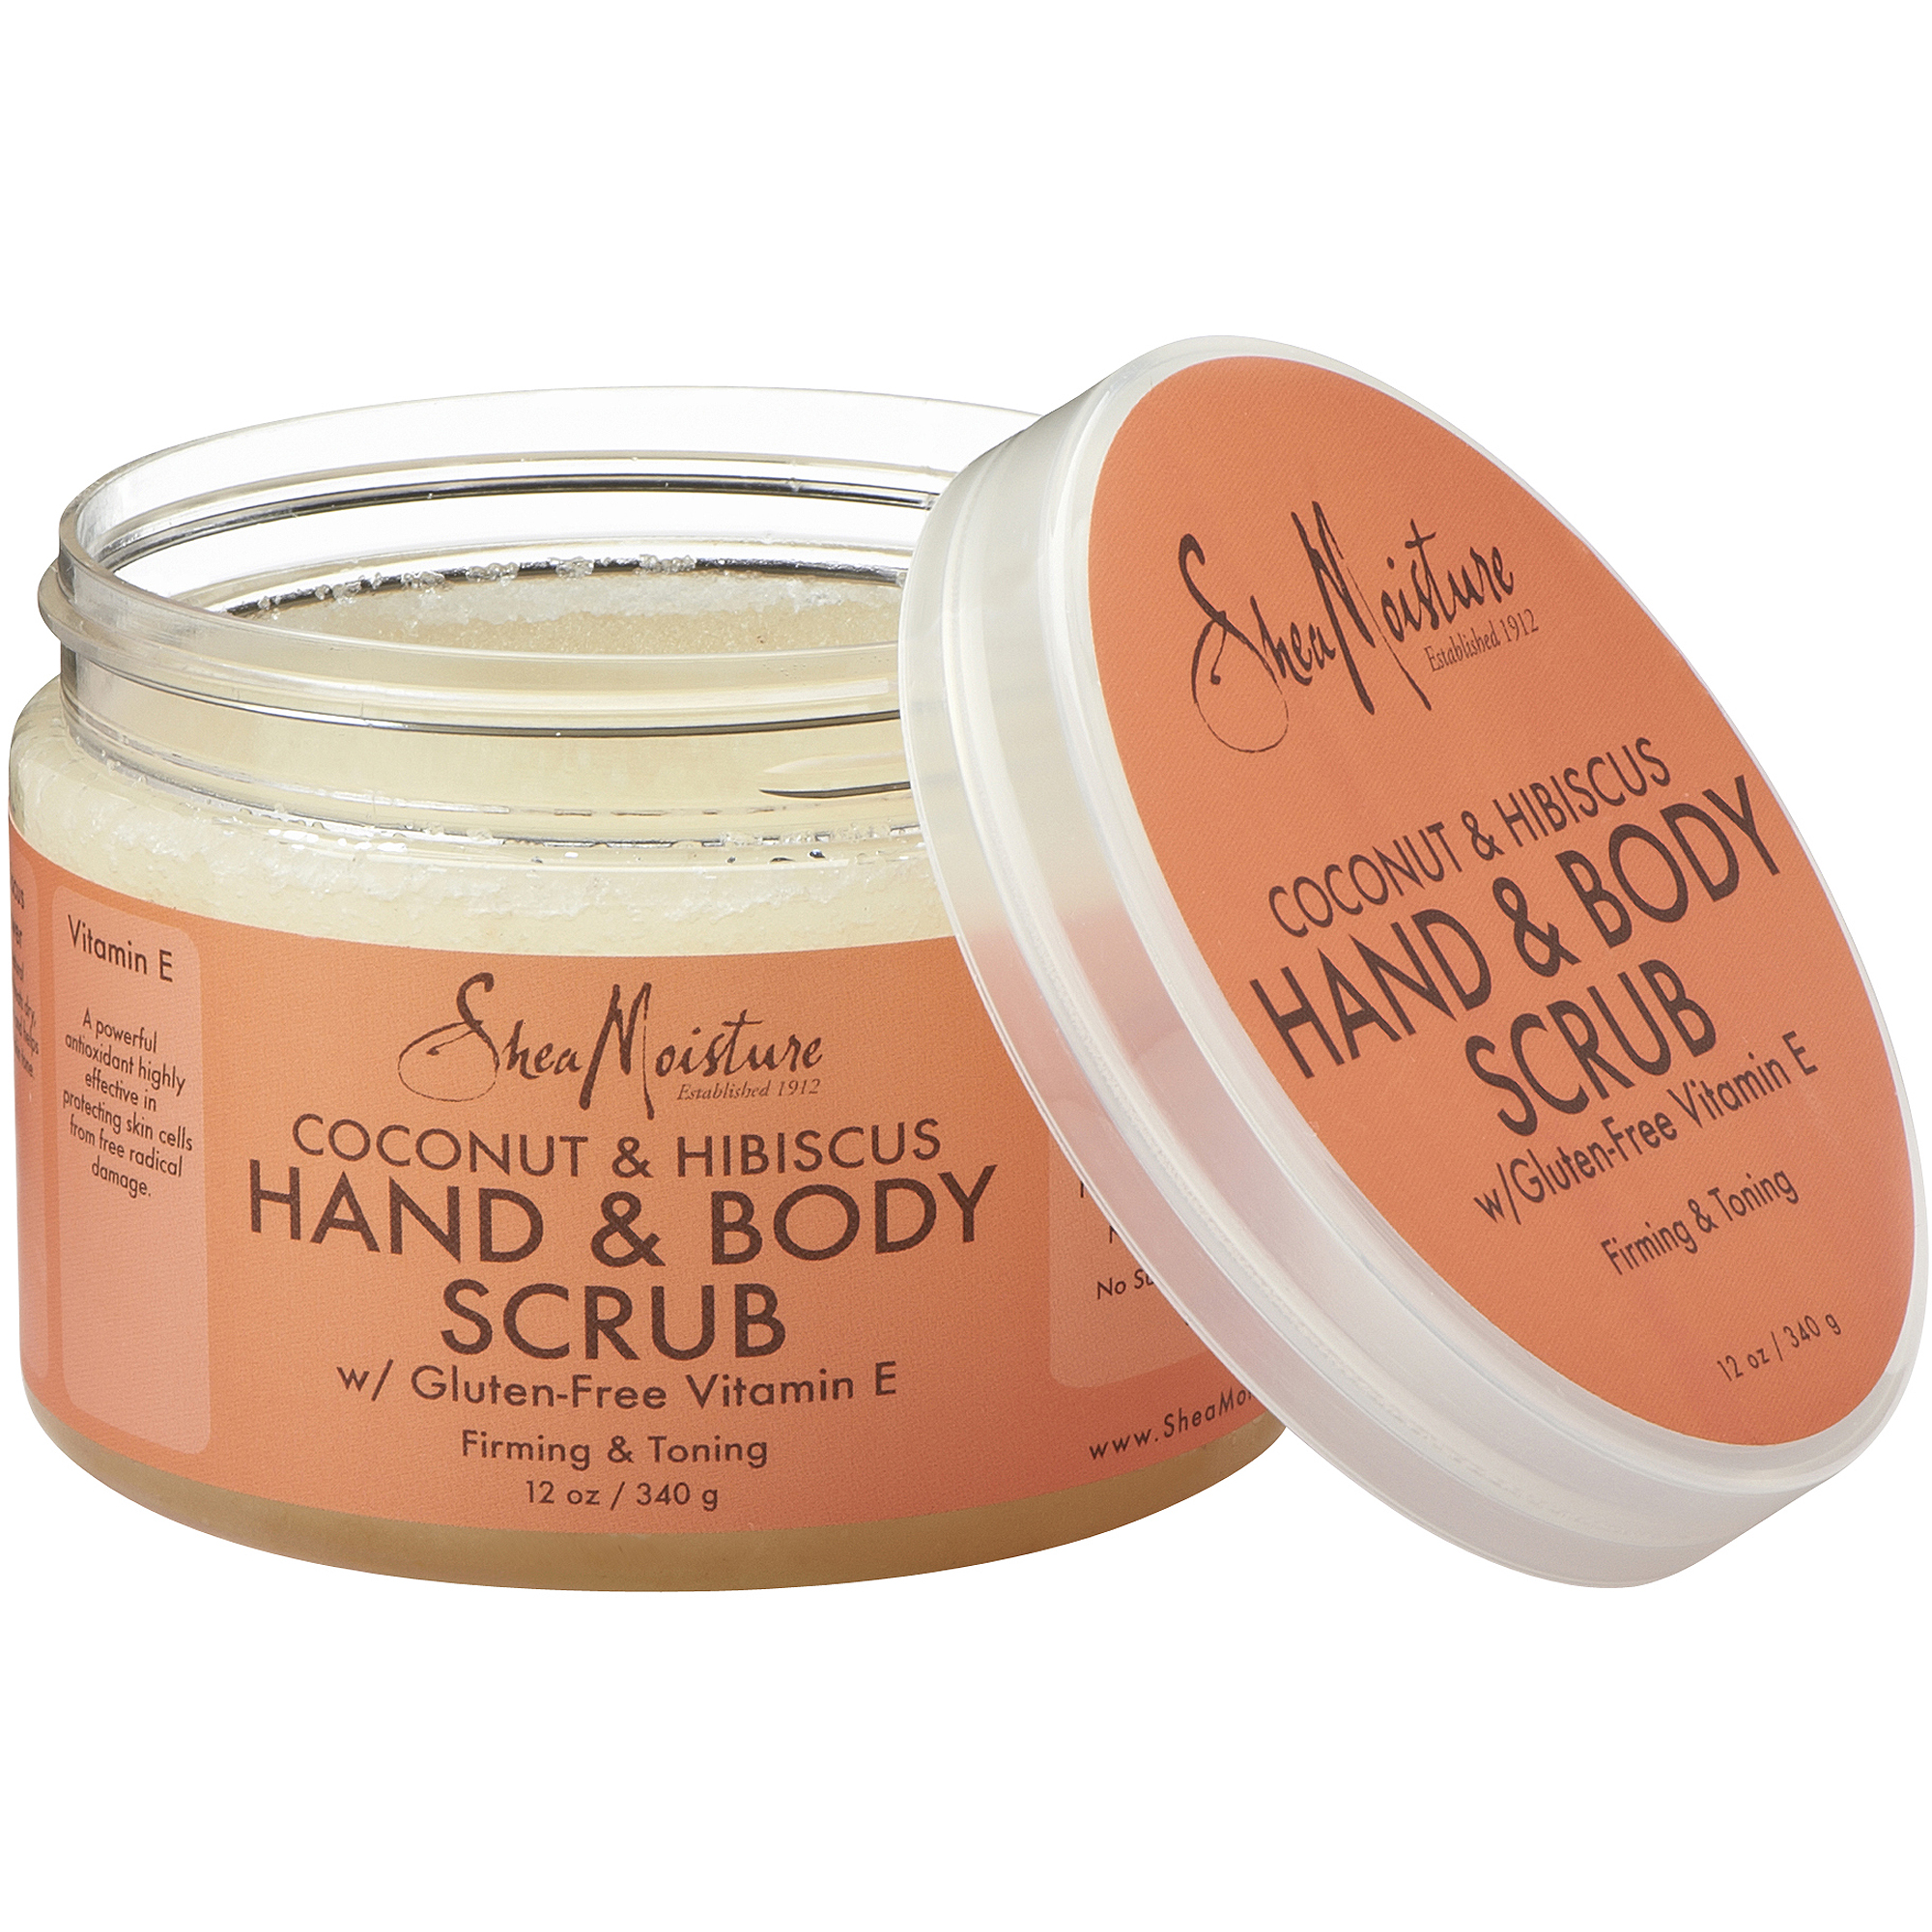 SheaMoisture Coconut & Hibiscus Hand & Body Scrub, 12 oz